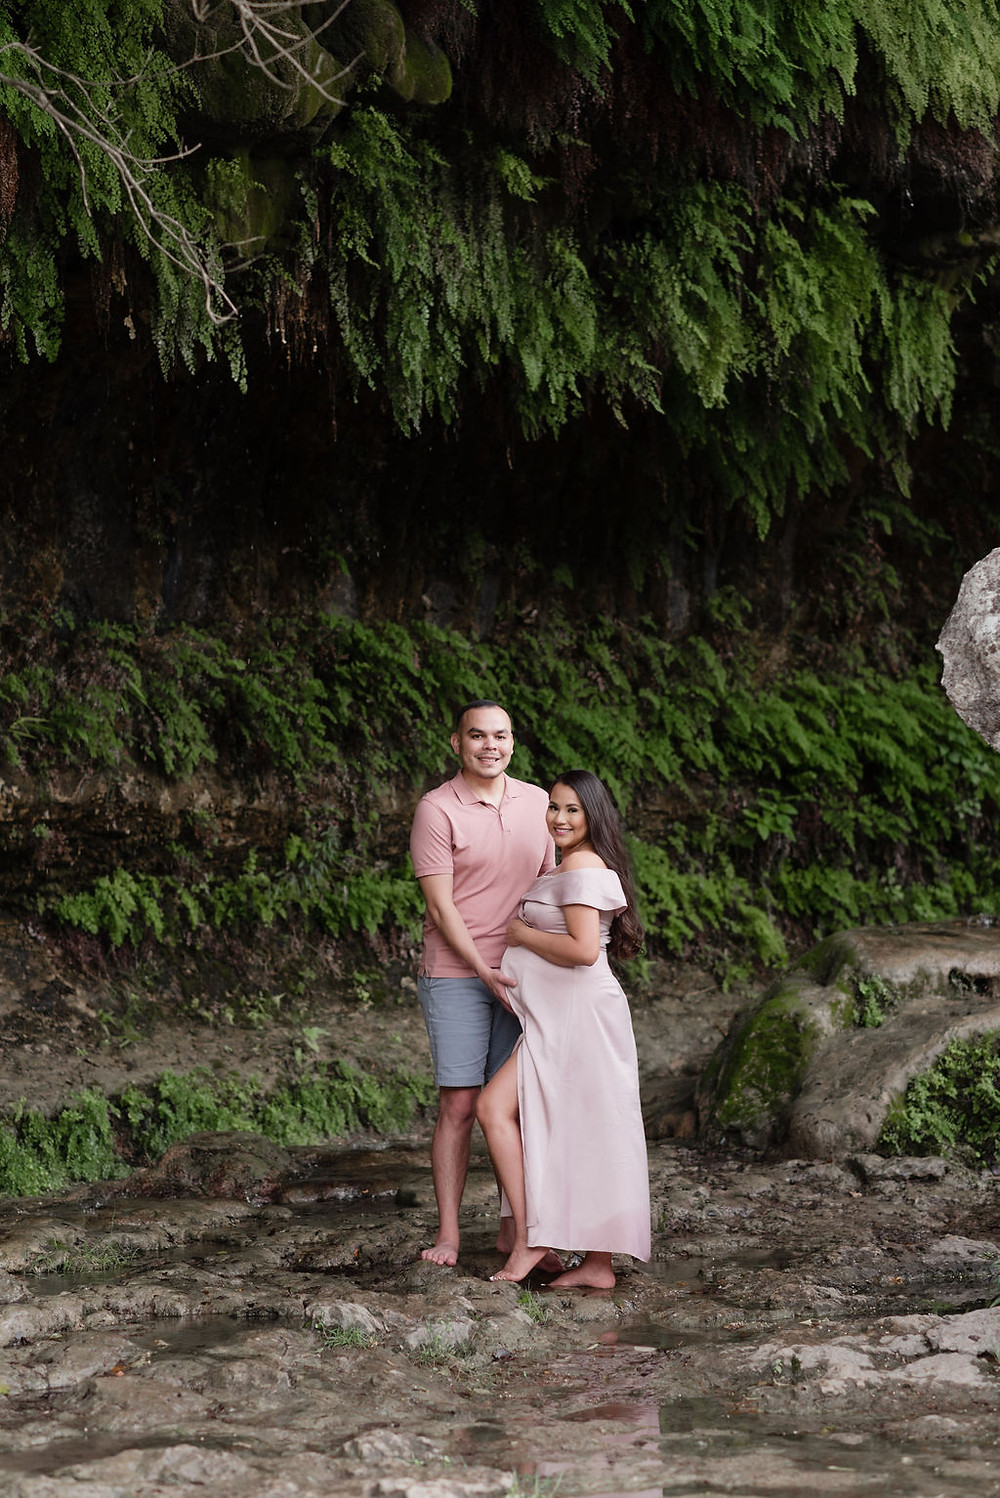 hidden gem at bull creek. there is a mossy cave that drips water behind a huge rock. excellent place to take photos that are shadowy and dramatic. mom and dad smile looking at camera for their maternity session. dad has hand on mom's pregnant belly